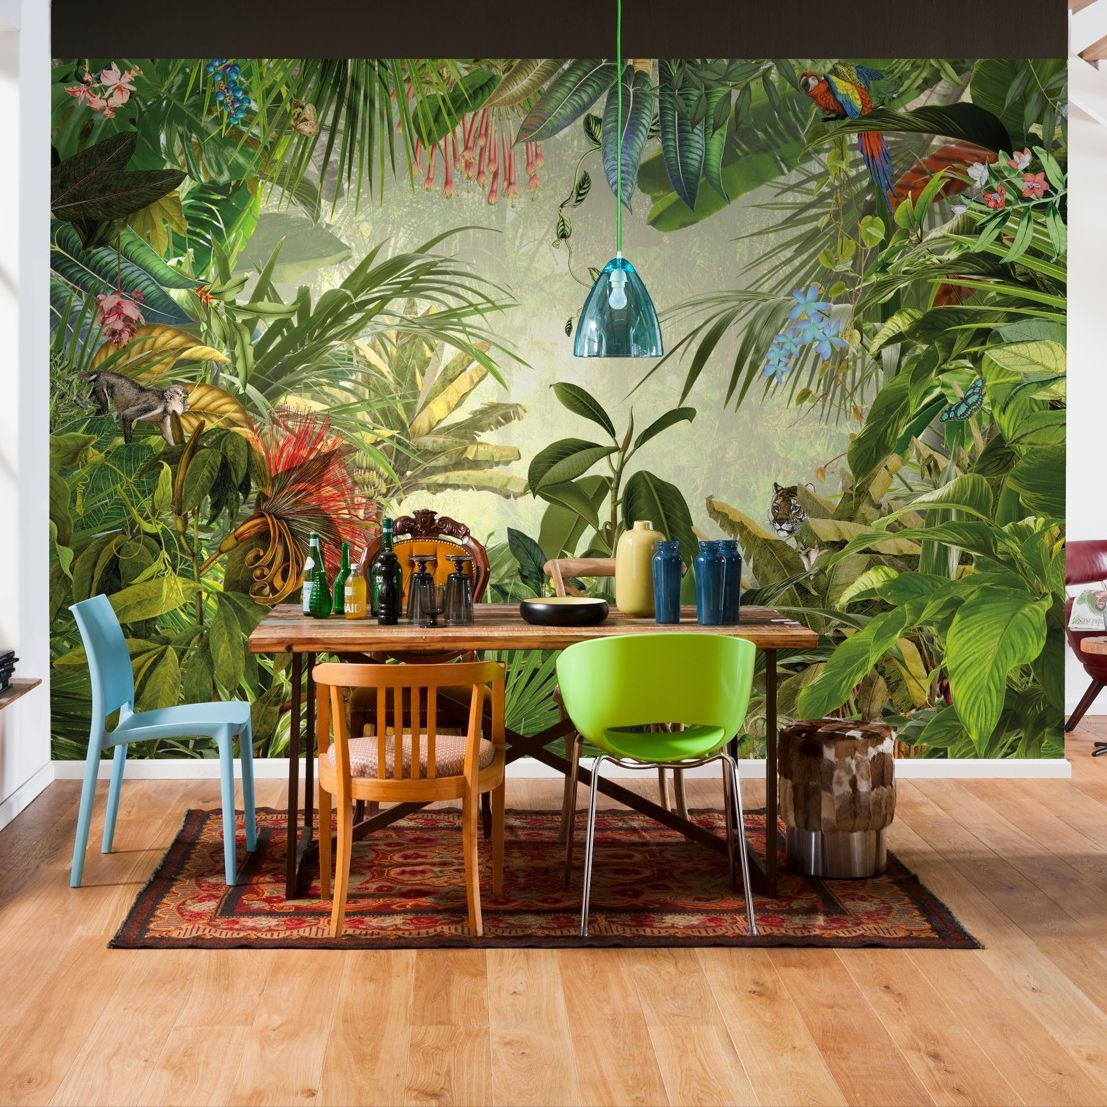 Décoration Murale Asiatique Komar Into The Wild Wall Mural The Mill Pinterest